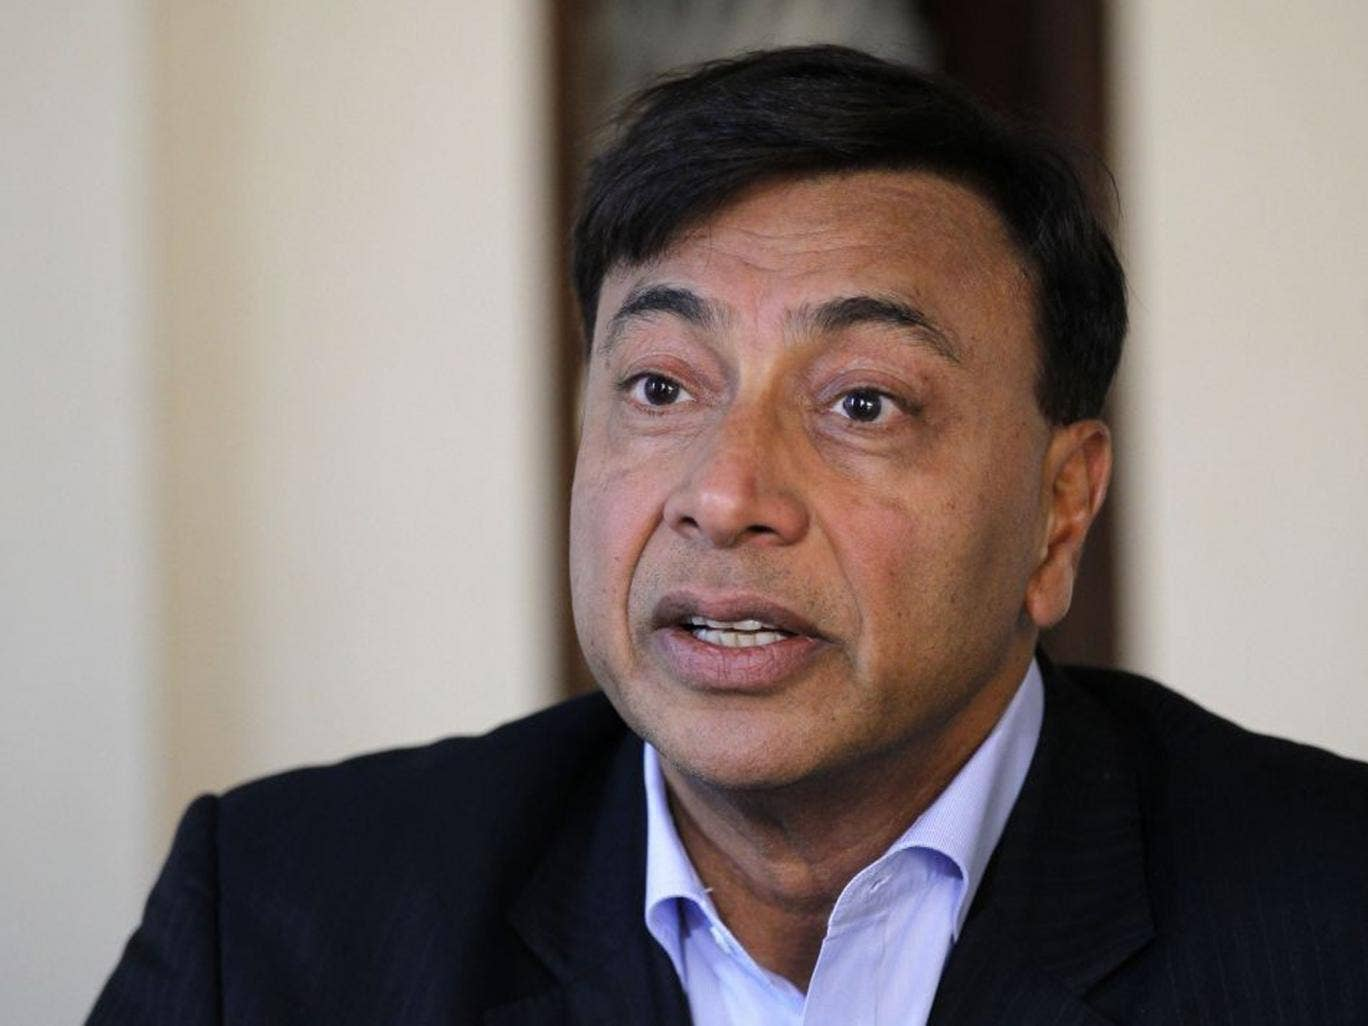 Lakshmi Mittal had until midnight to sell a steel plant at Florange in Lorraine, at which point Paris had threatened to nationalise it